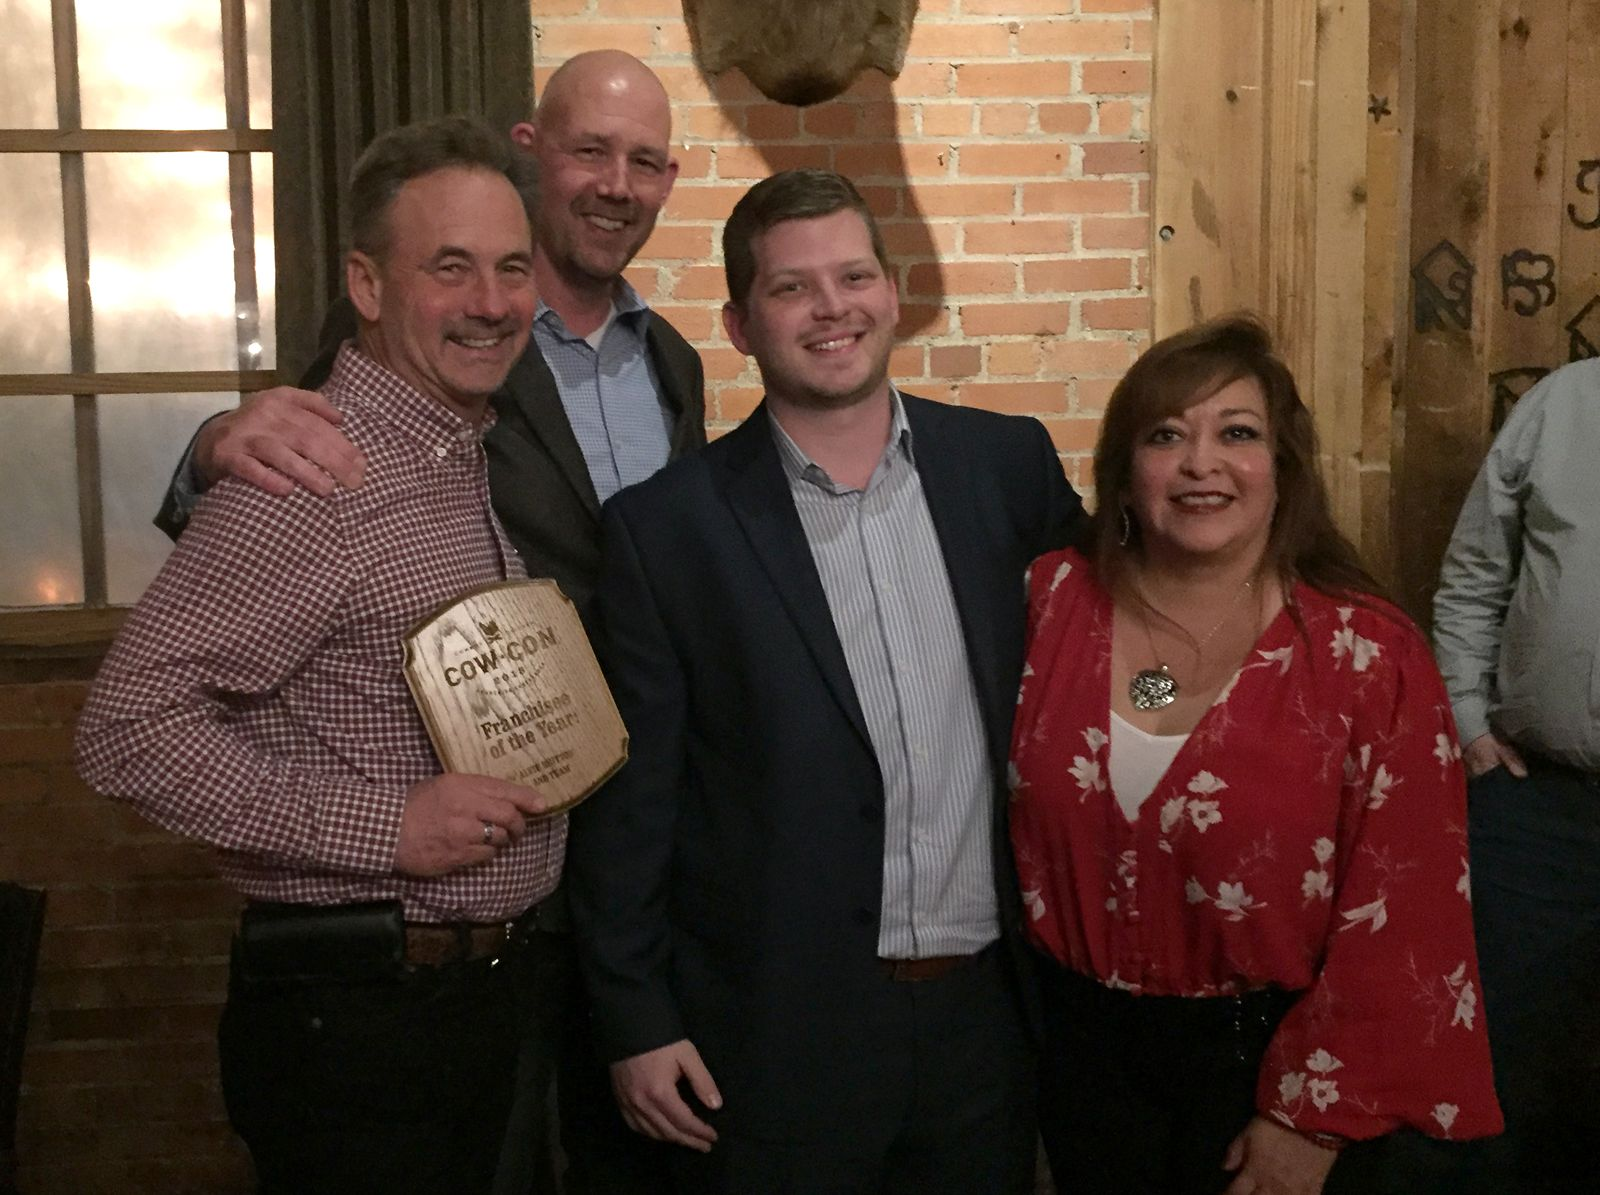 McAllen's Alvie Britton Honored as Cowboy Chicken Franchisee of the Year